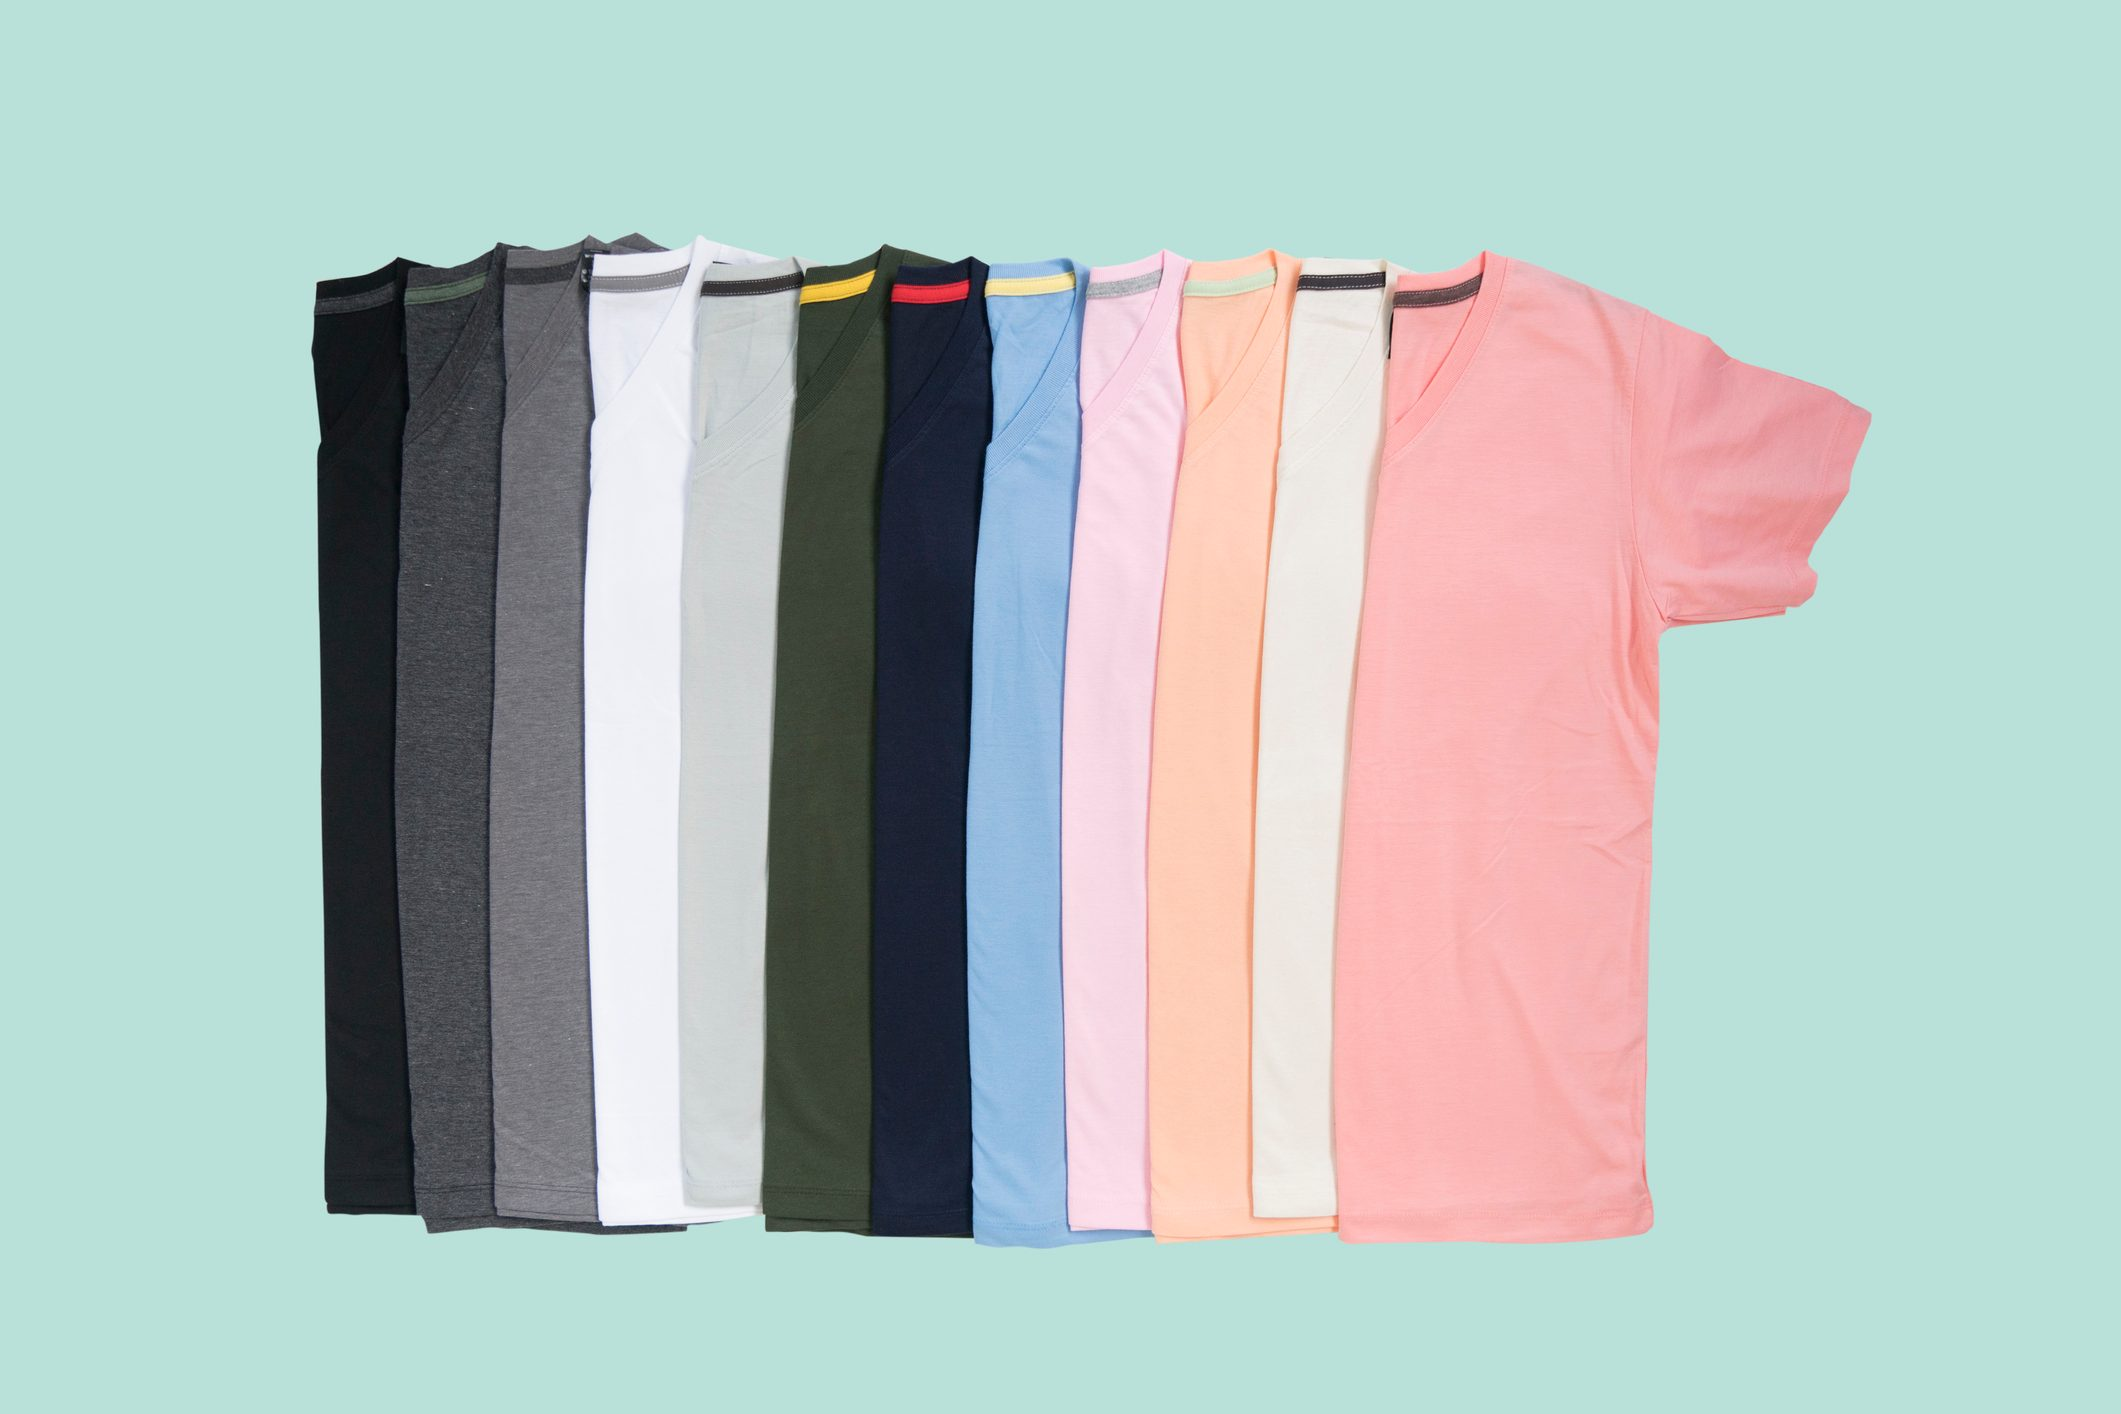 colorful t shirts on teal colored background